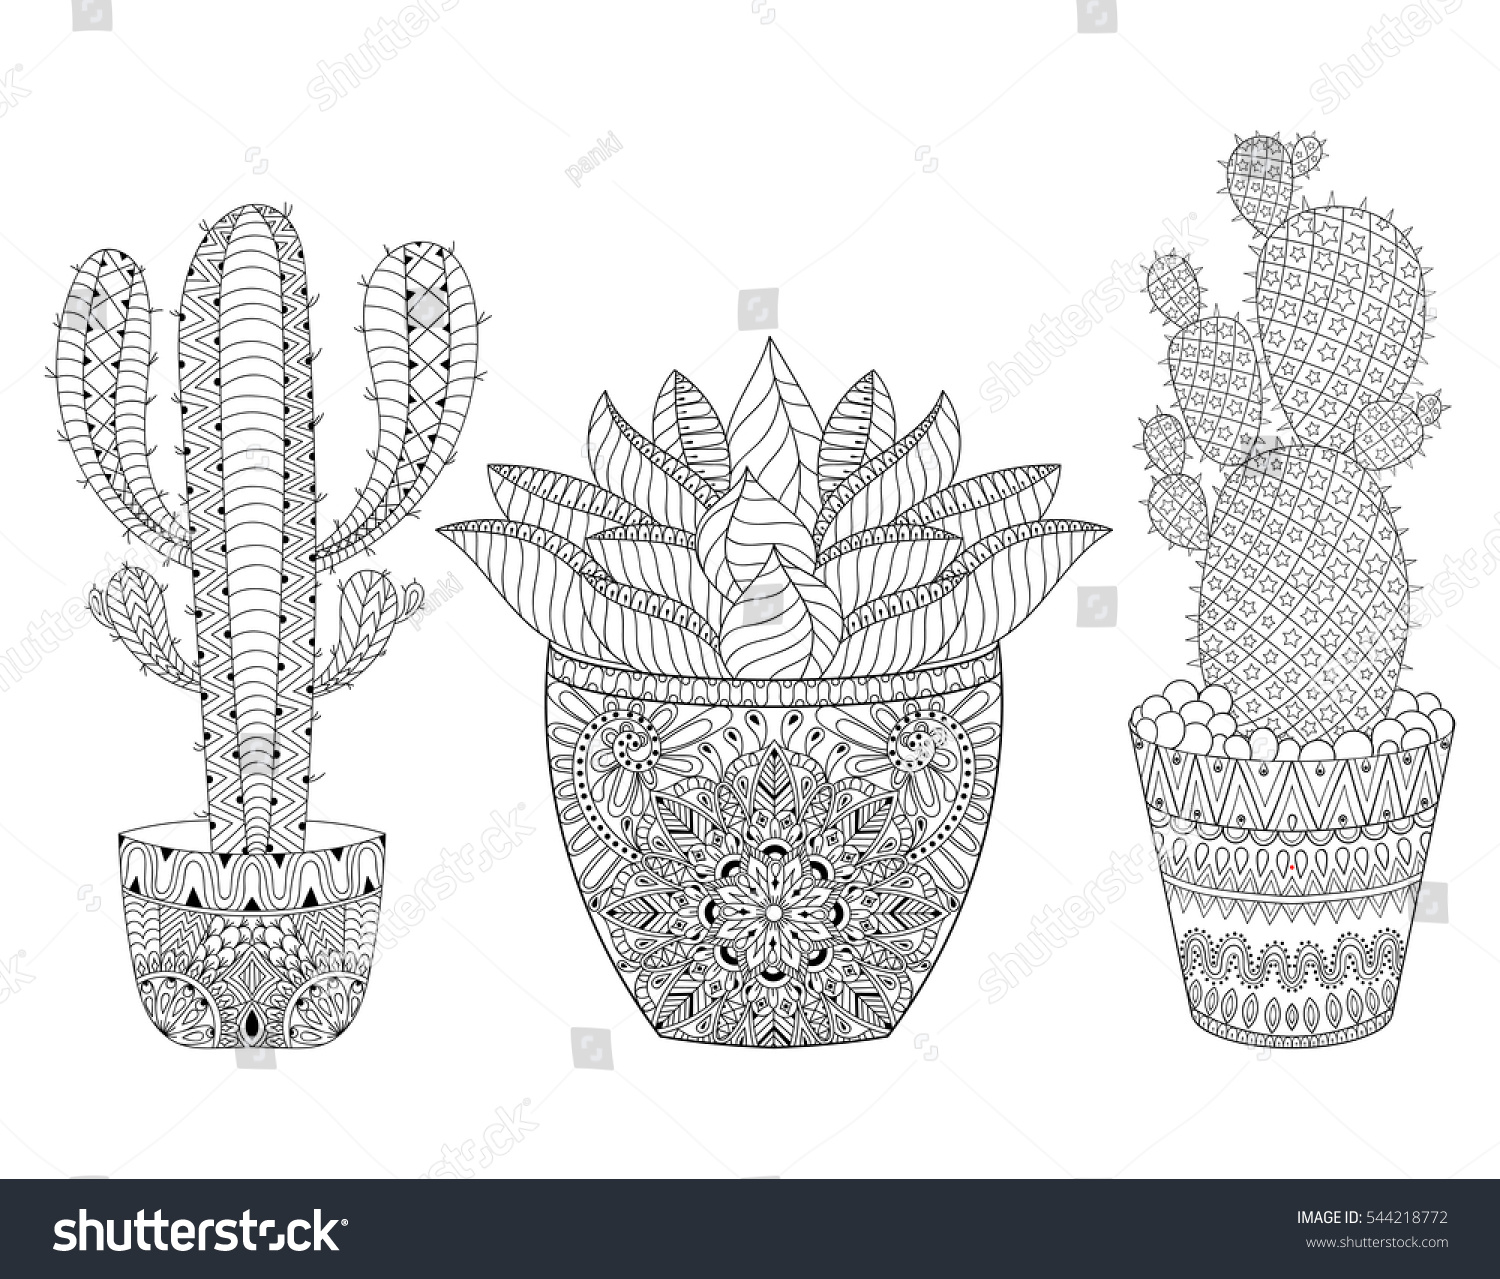 zentangle cactus set illustration hand drawn stock illustration